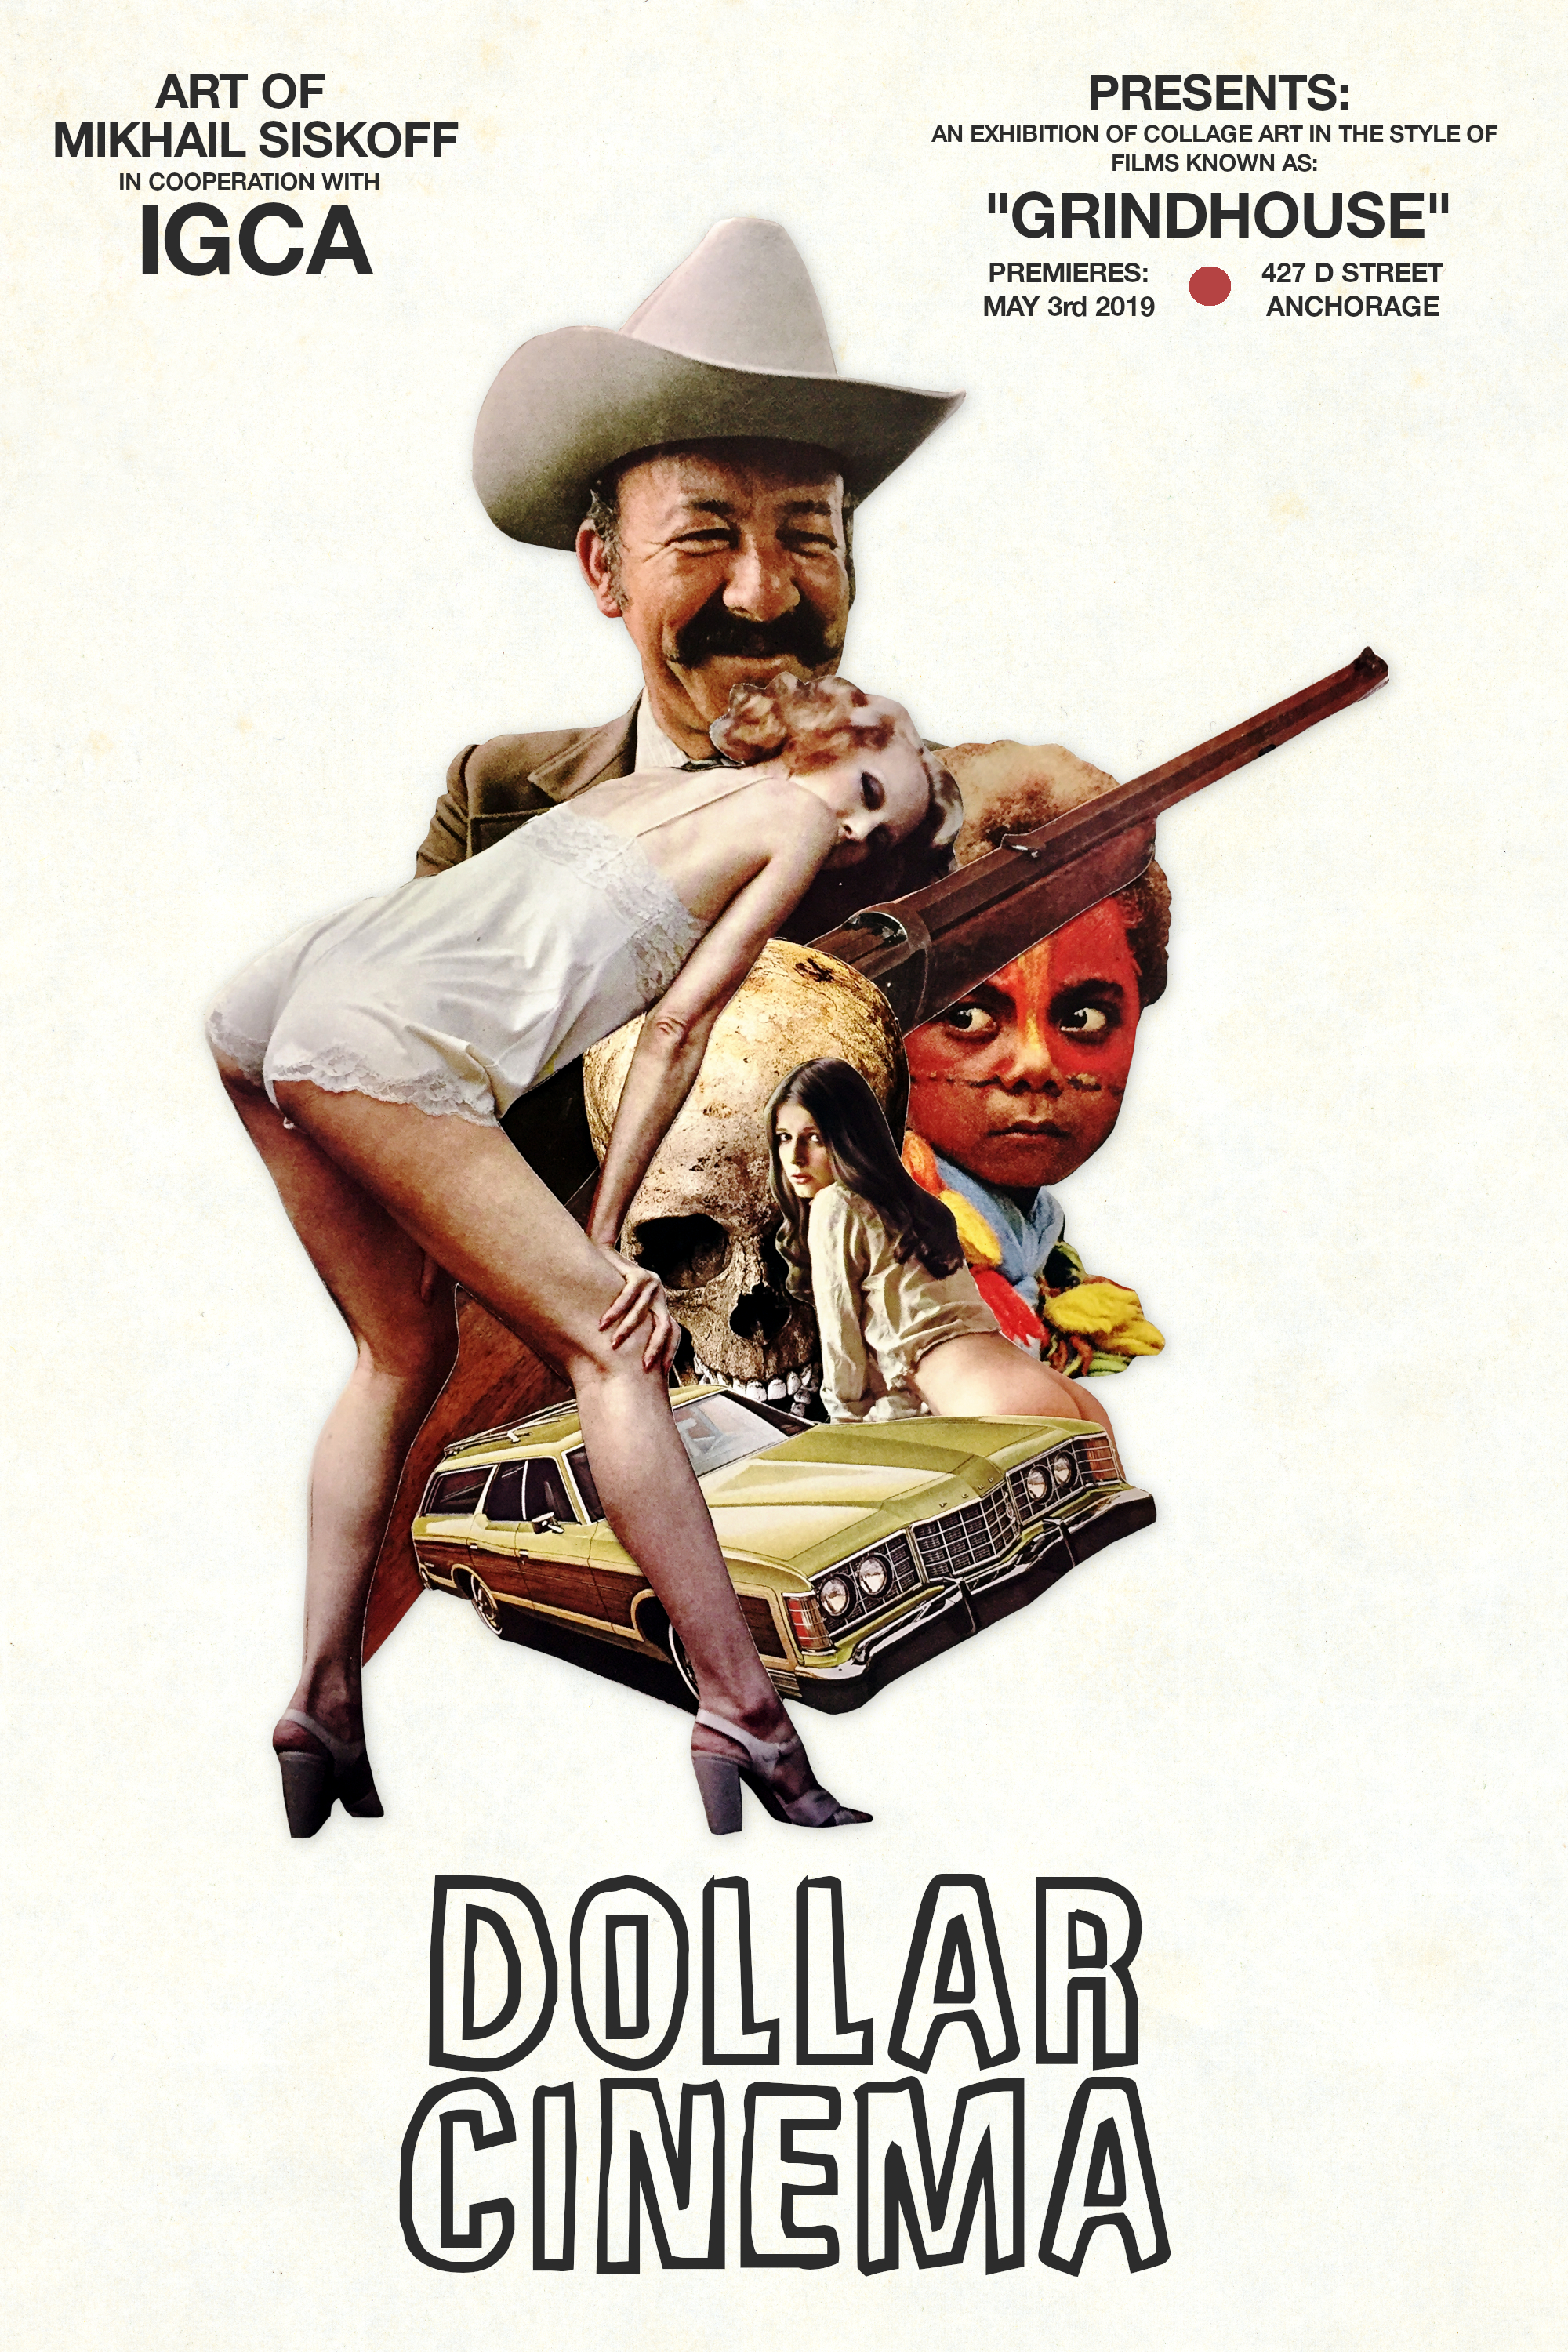 Mikhail Siskoff,  Dollar Cinema,  Collage